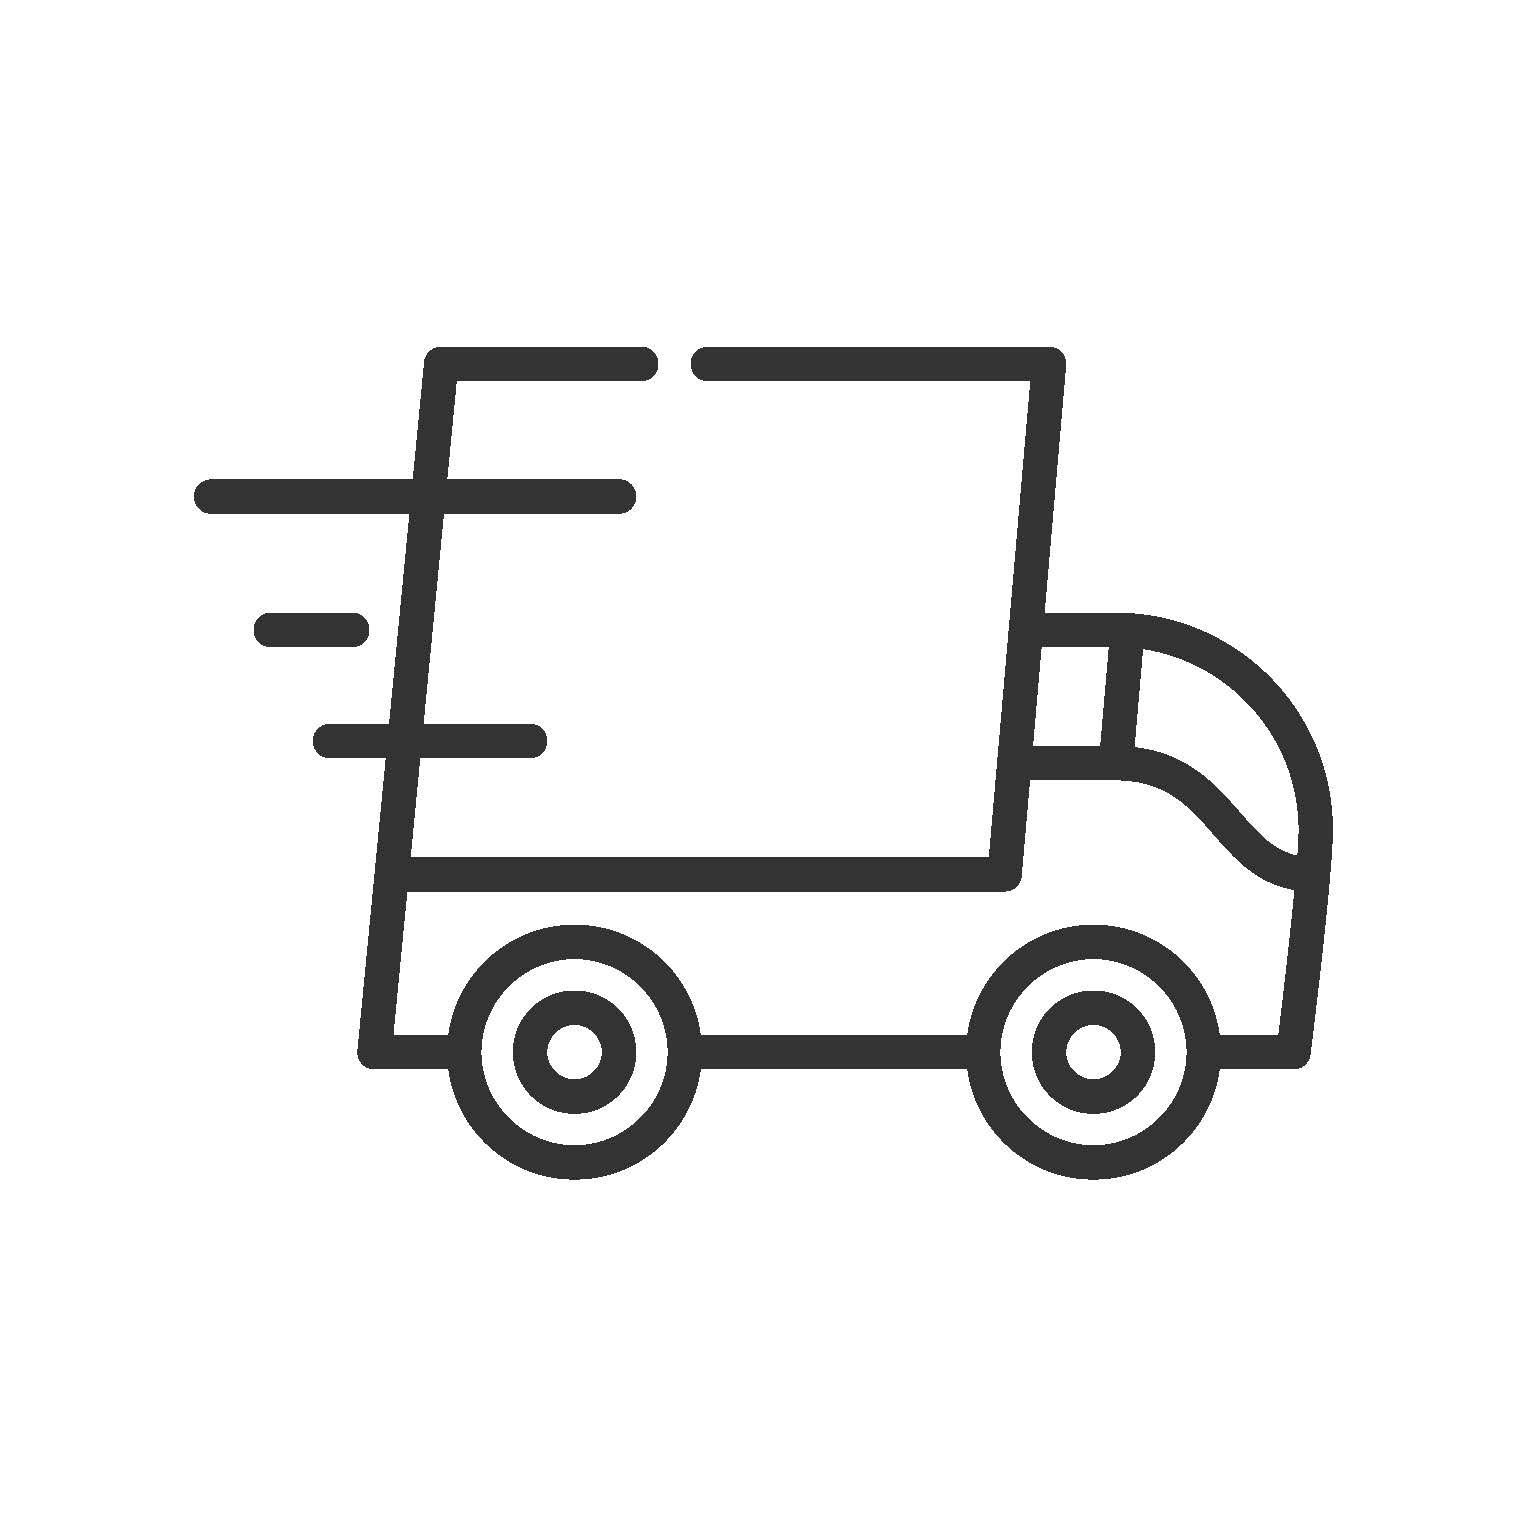 wcs-deliver-truck-icon.jpg